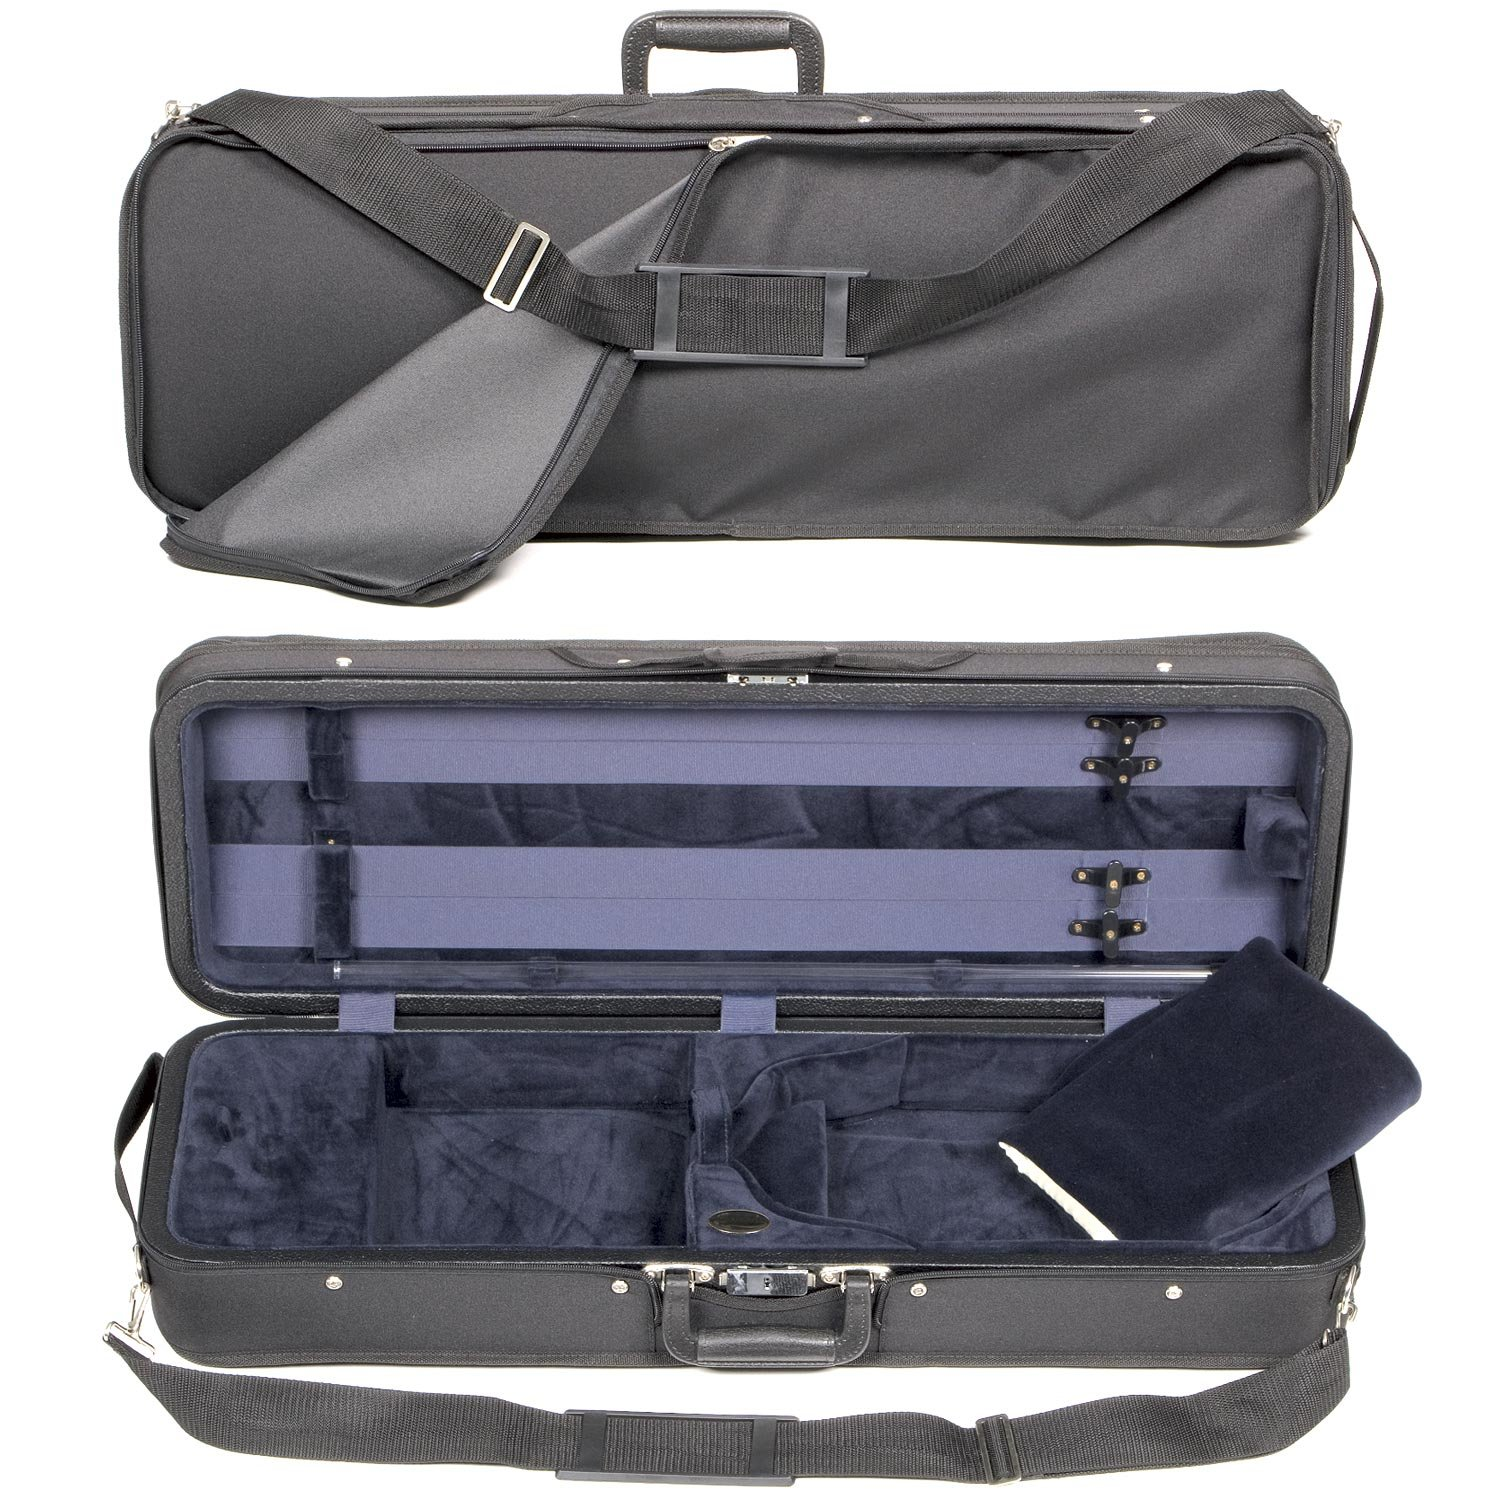 Top 17 Best Violin Cases (2020 Reviews & Buying Guide) 16